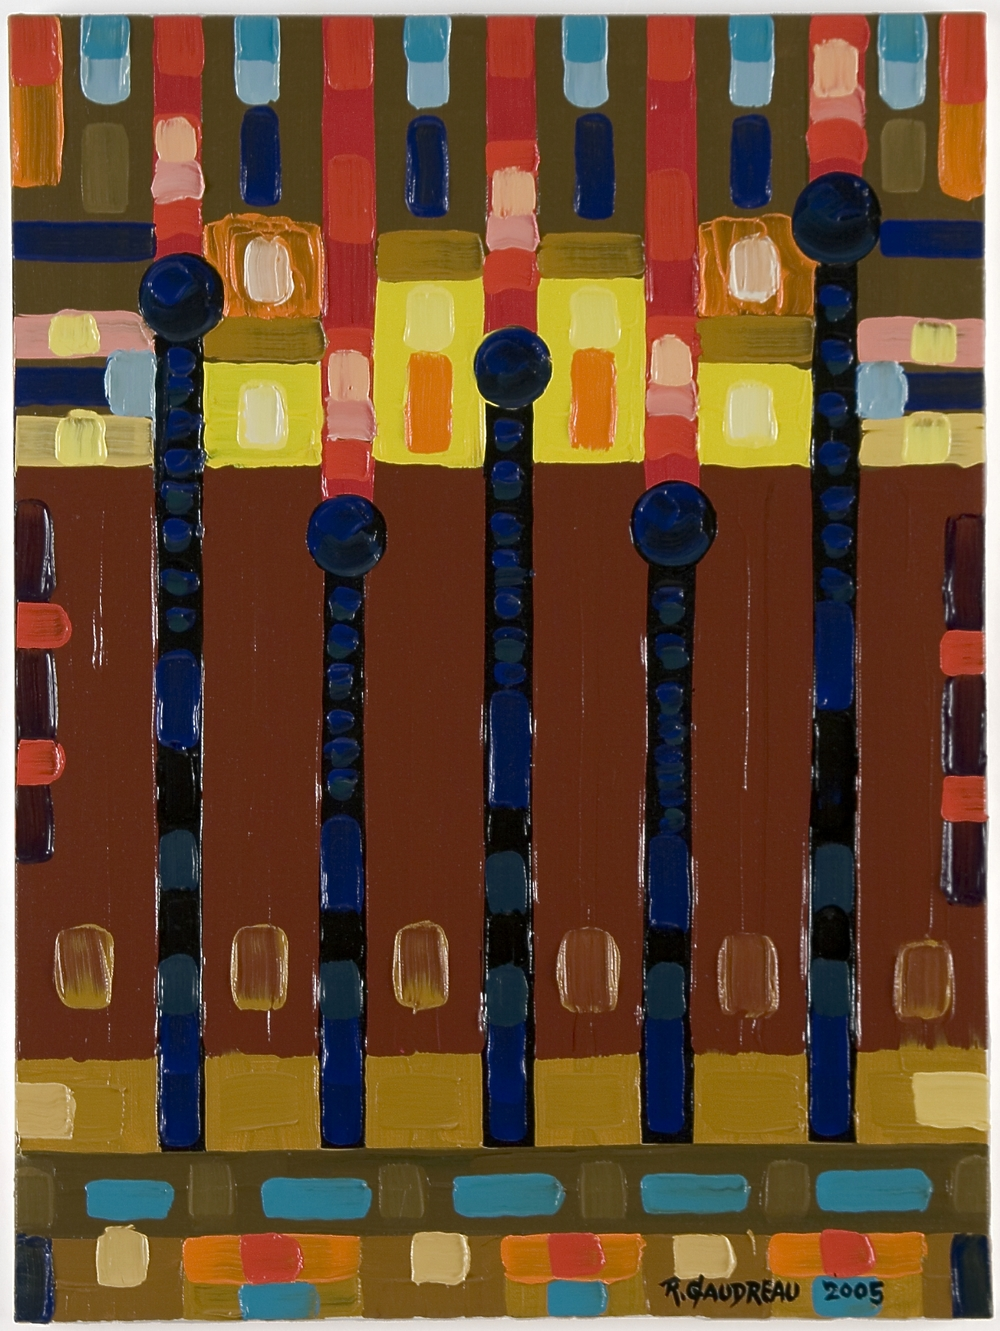 Nails     2005 oil on canvas 20 x 16 inches